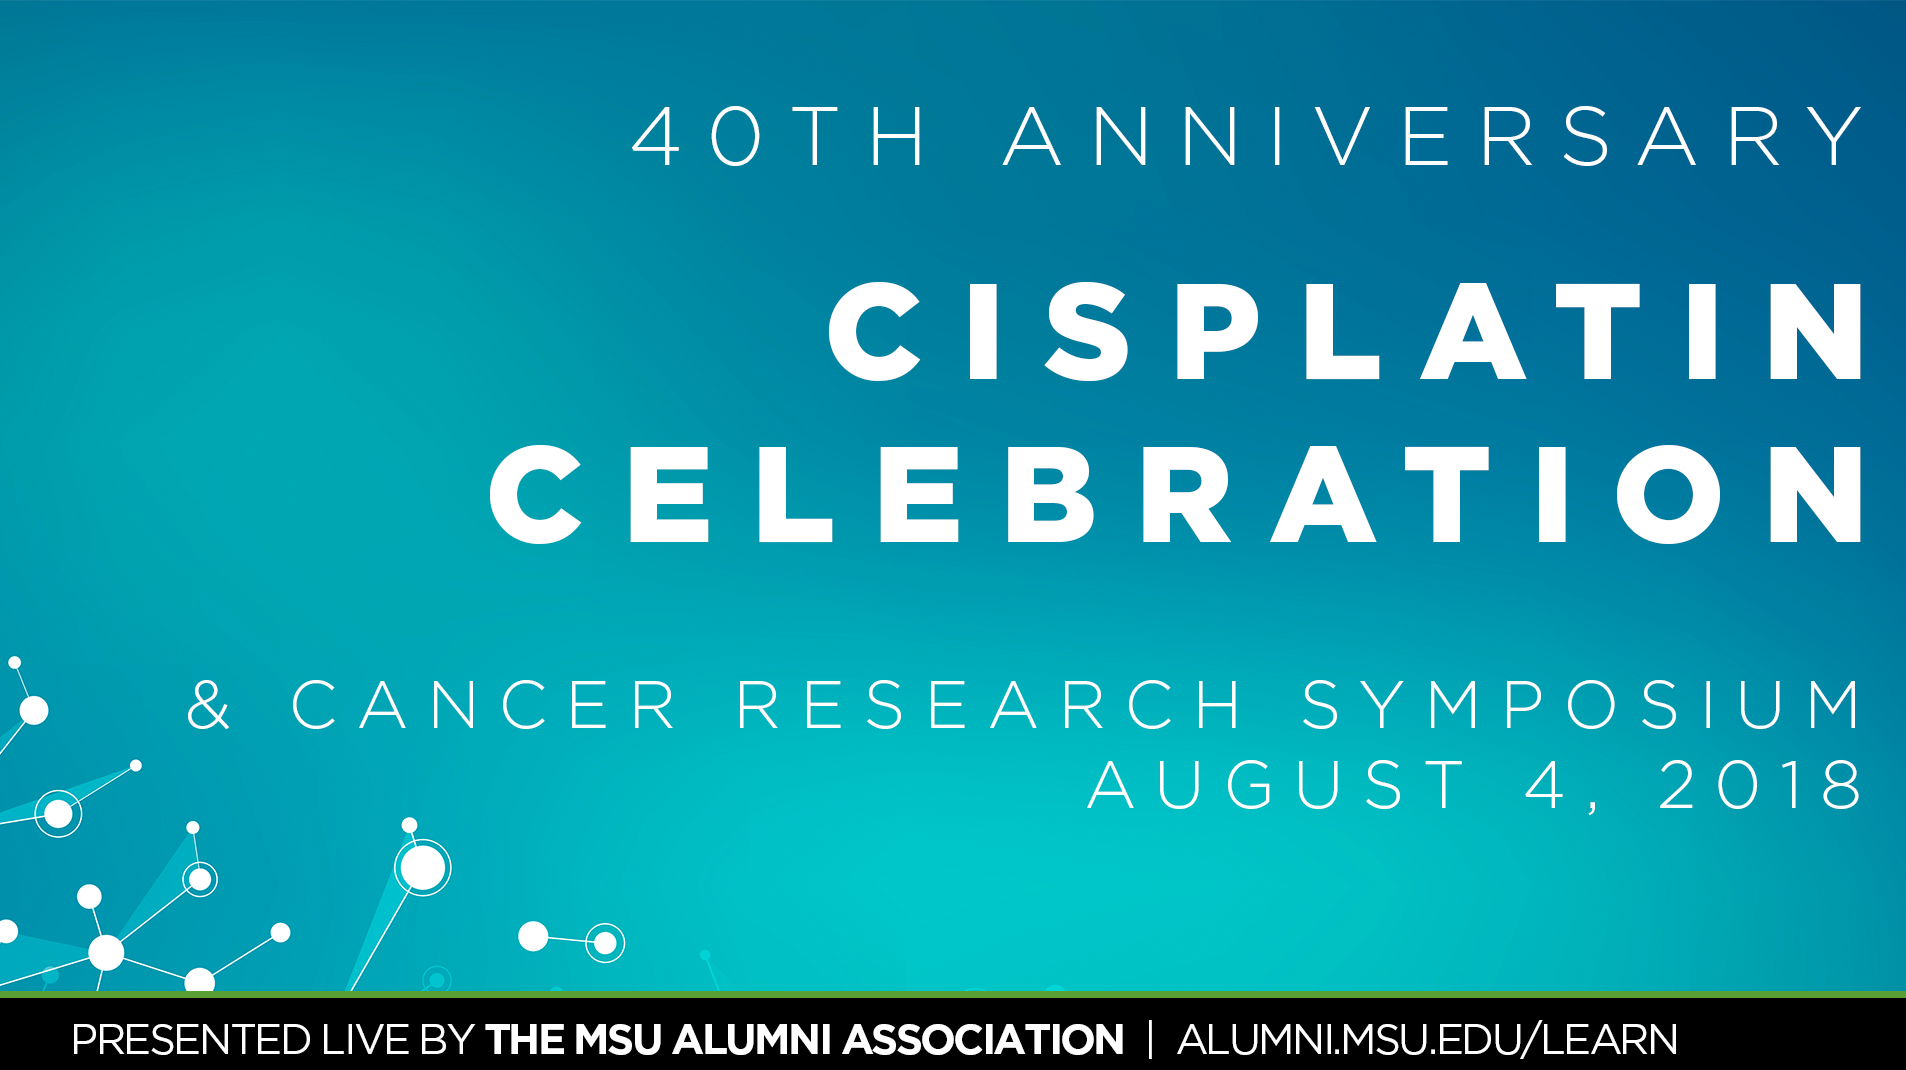 livestream cover image for 40th Anniversary Cisplatin Celebration & Cancer Research Symposium